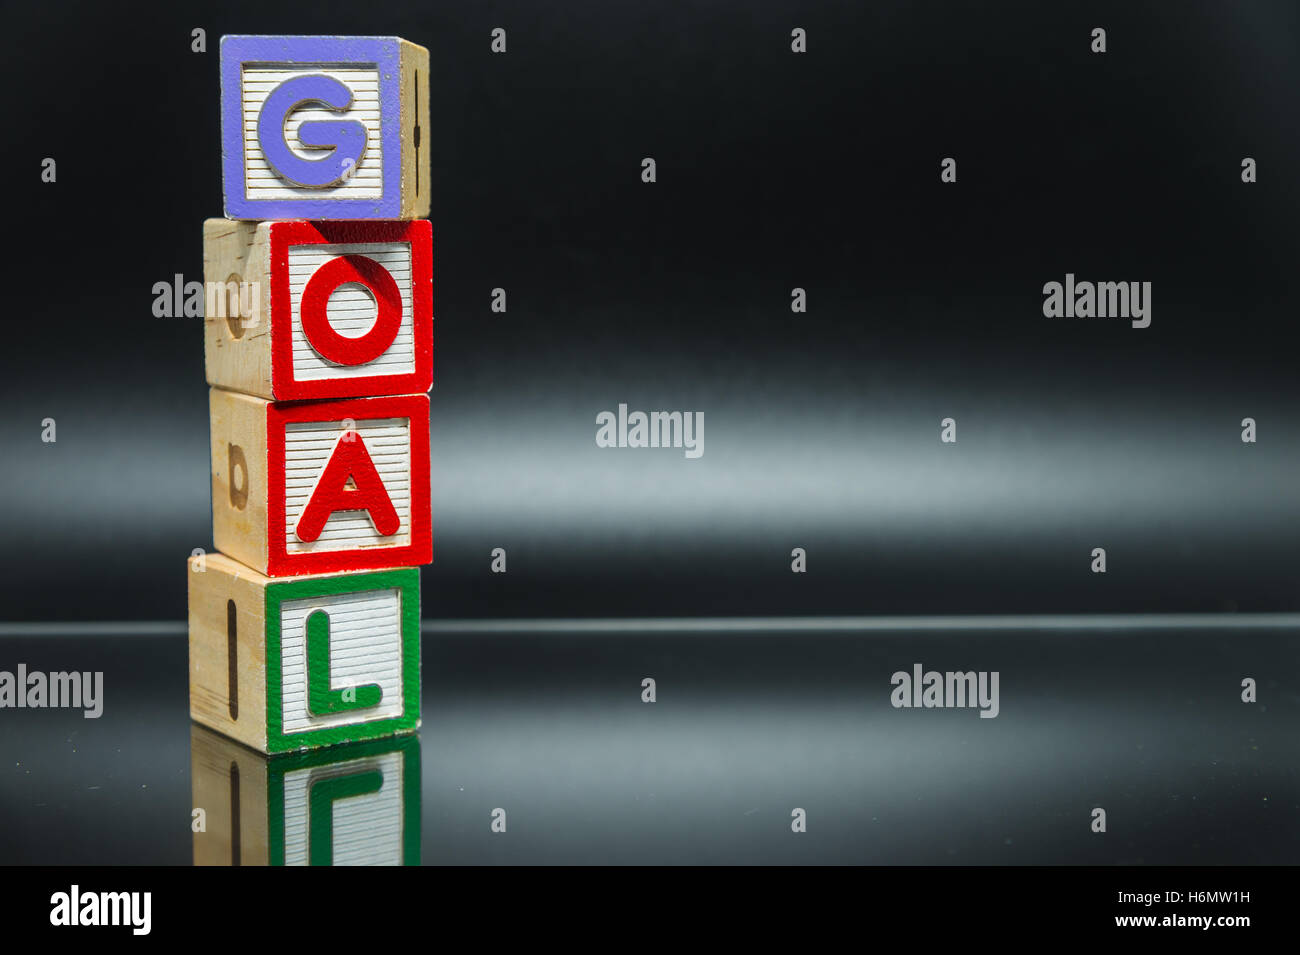 GOAL word wooden block arrange in vertical style on black background and selective focus - Stock Image